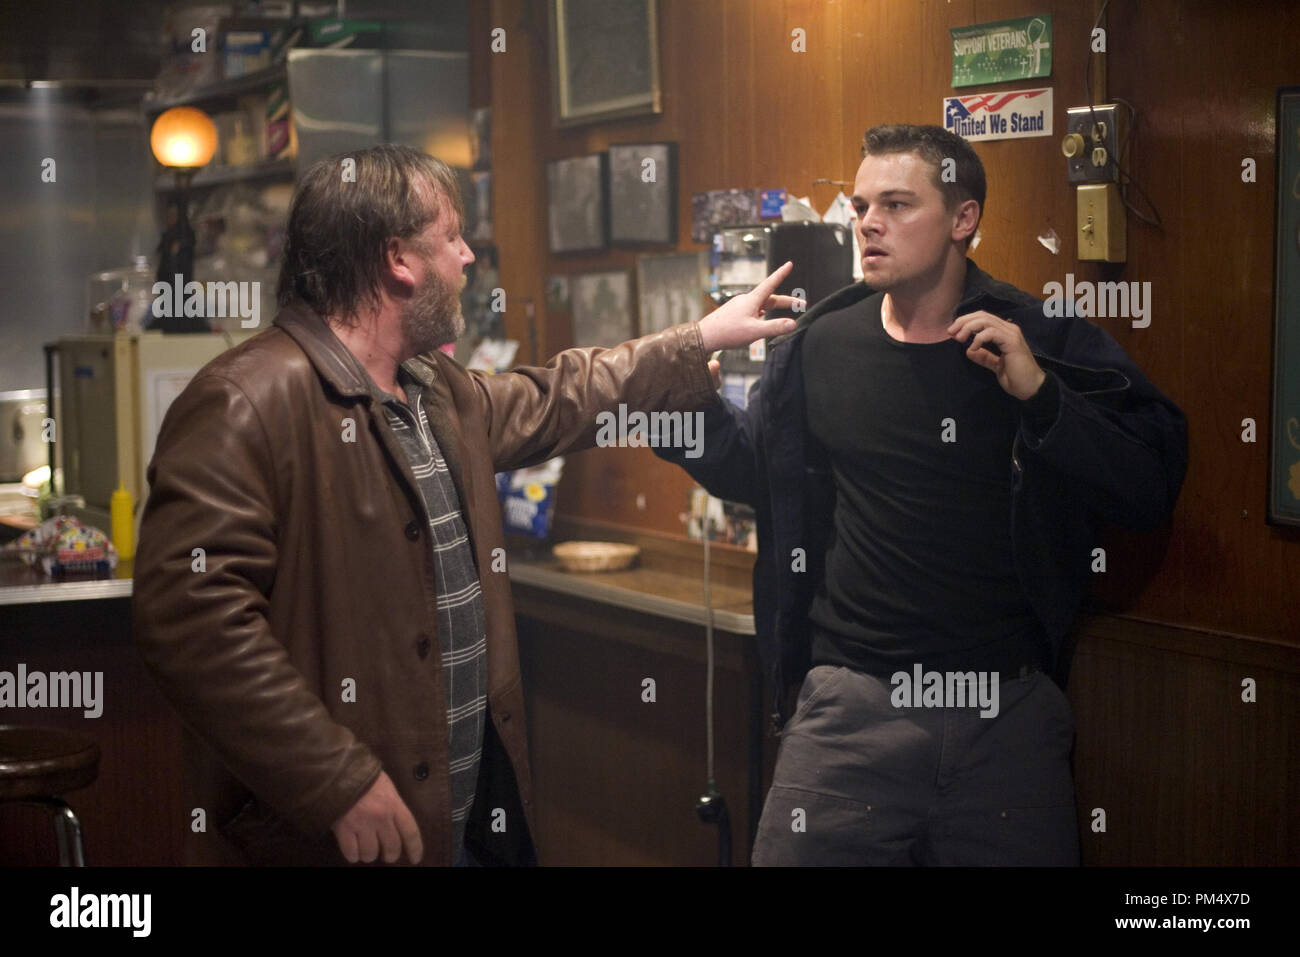 Studio Publicity Still from 'The Departed' Ray Winstone, Leonardo DiCaprio © 2006 Warner Photo credit: Andrew Cooper   File Reference # 307372376THA  For Editorial Use Only -  All Rights Reserved - Stock Image